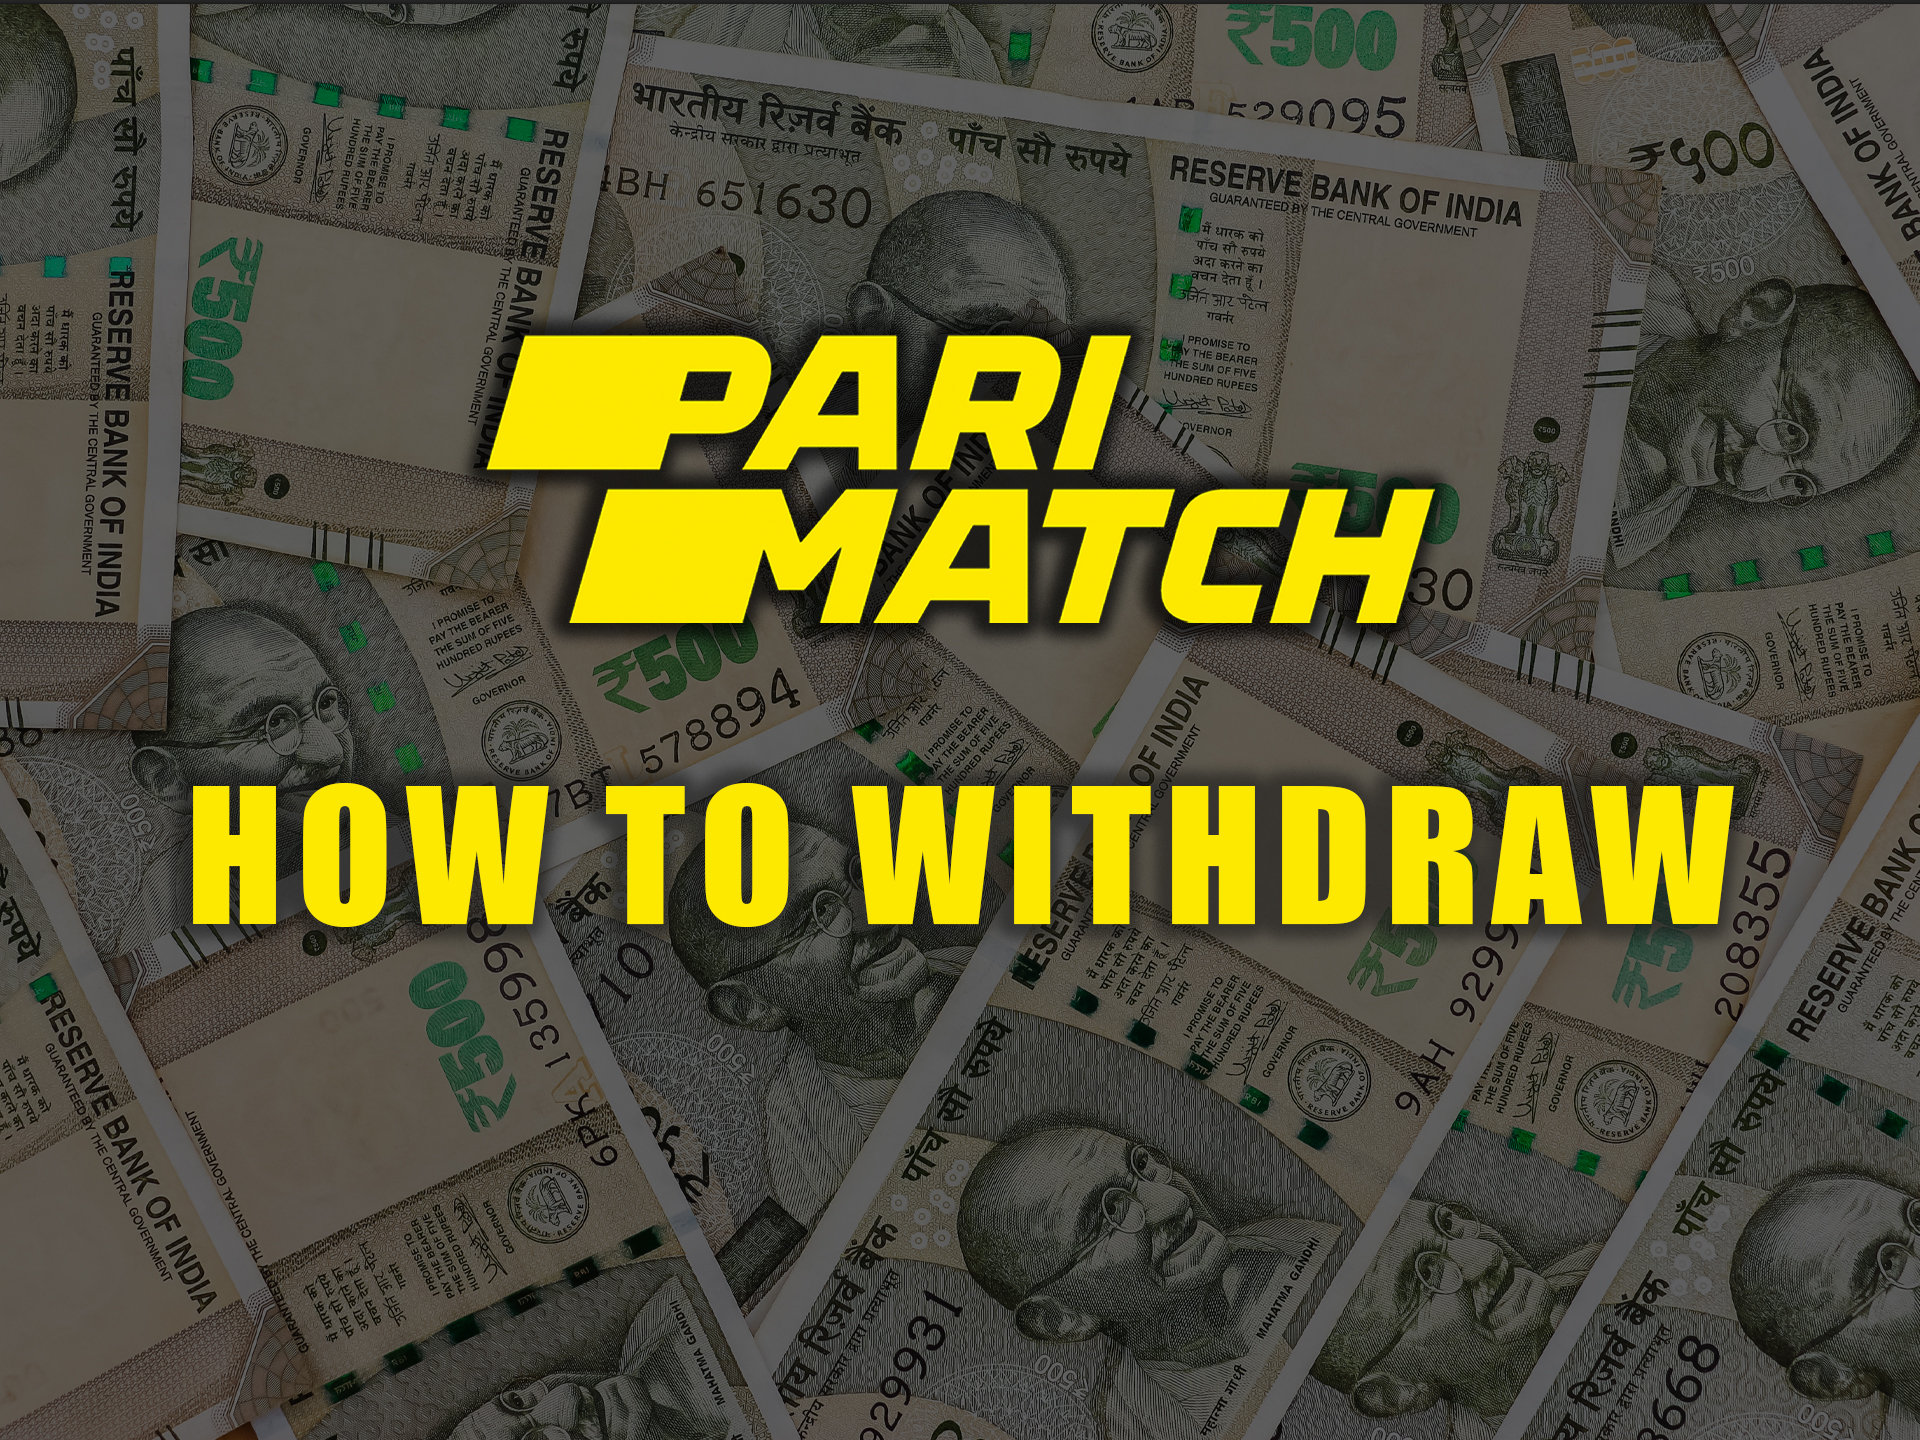 After your first wins, you can withdraw funds from the Parimatch betting account.